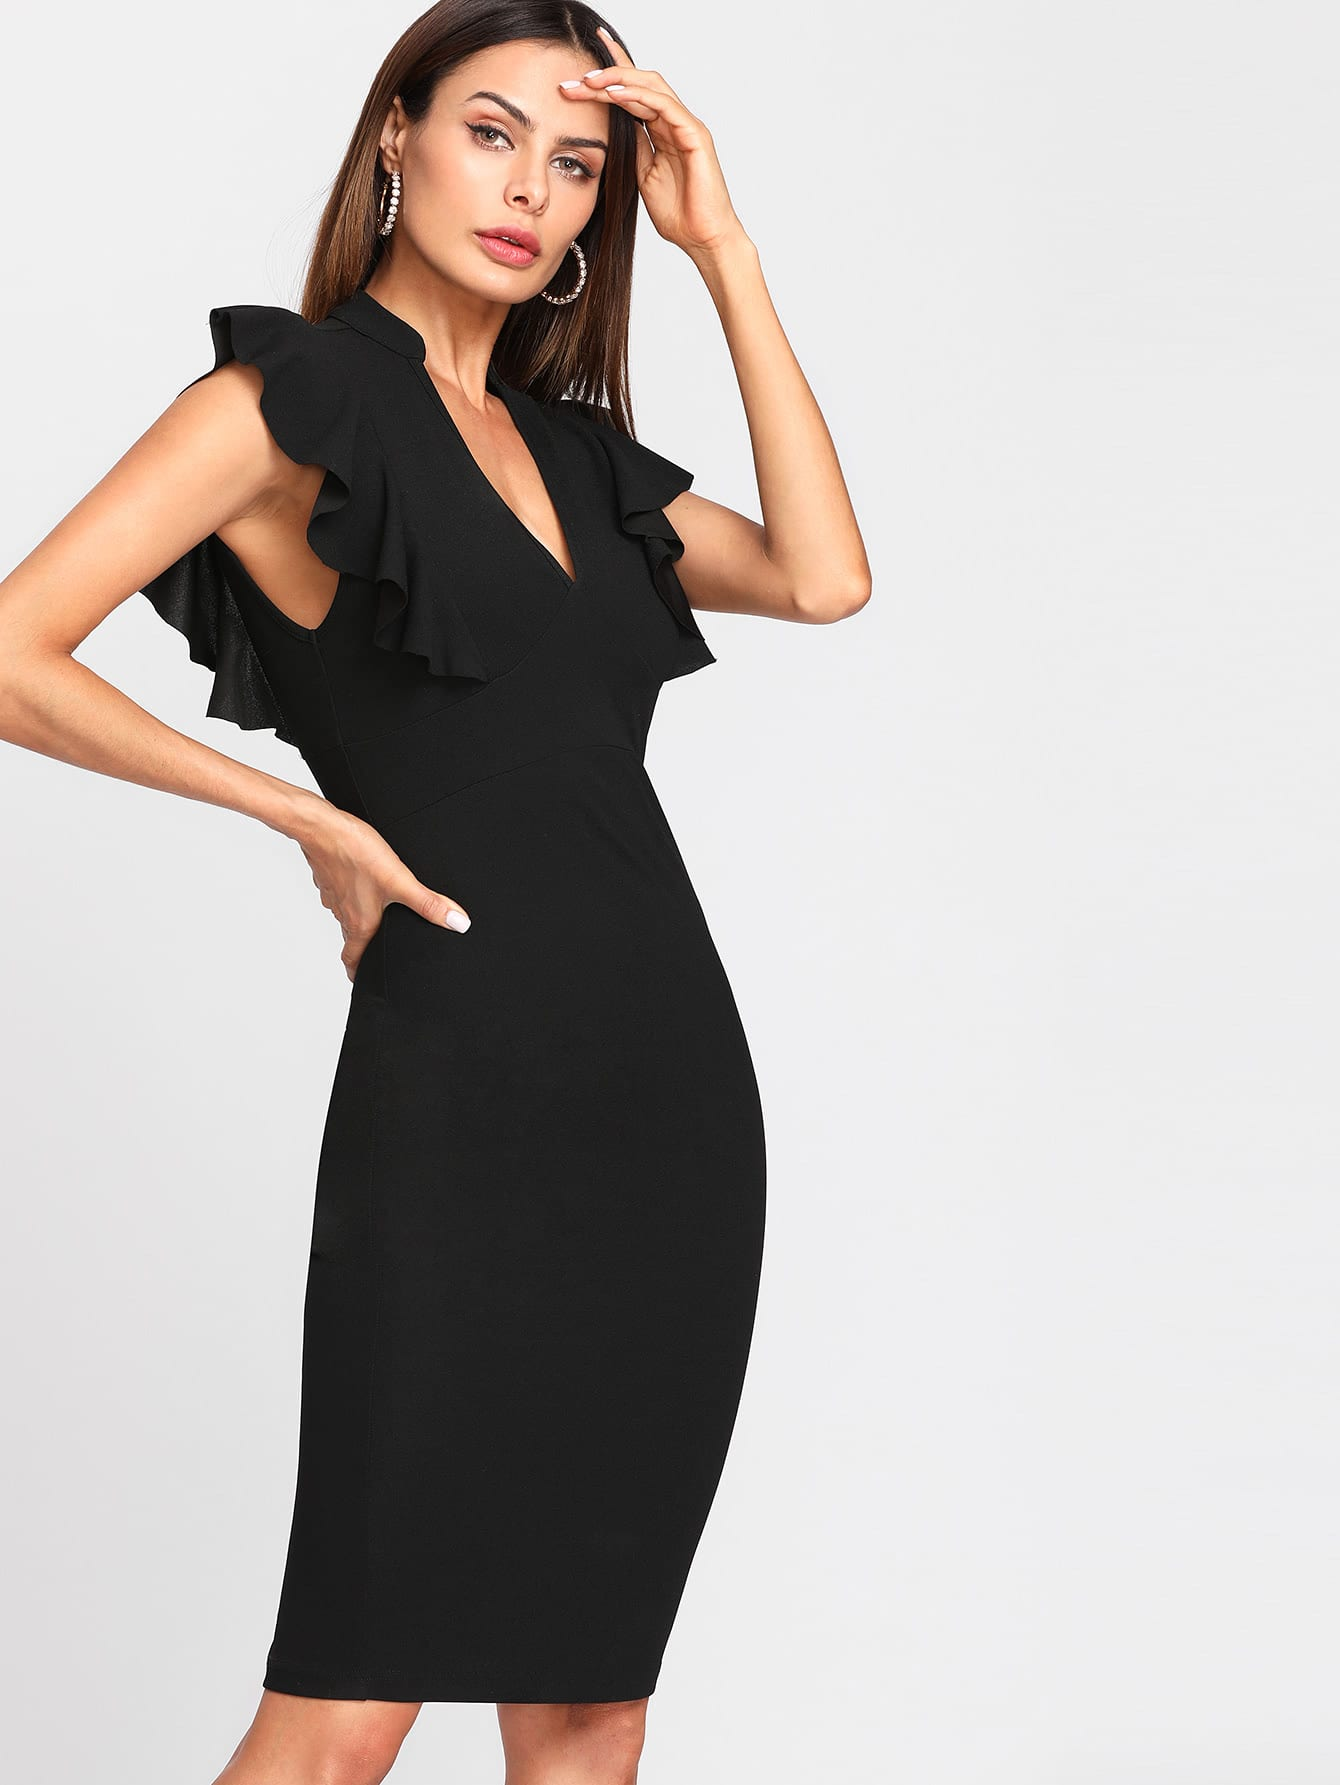 Ruffle Trim Vented Back Fitted Dress open back fitted